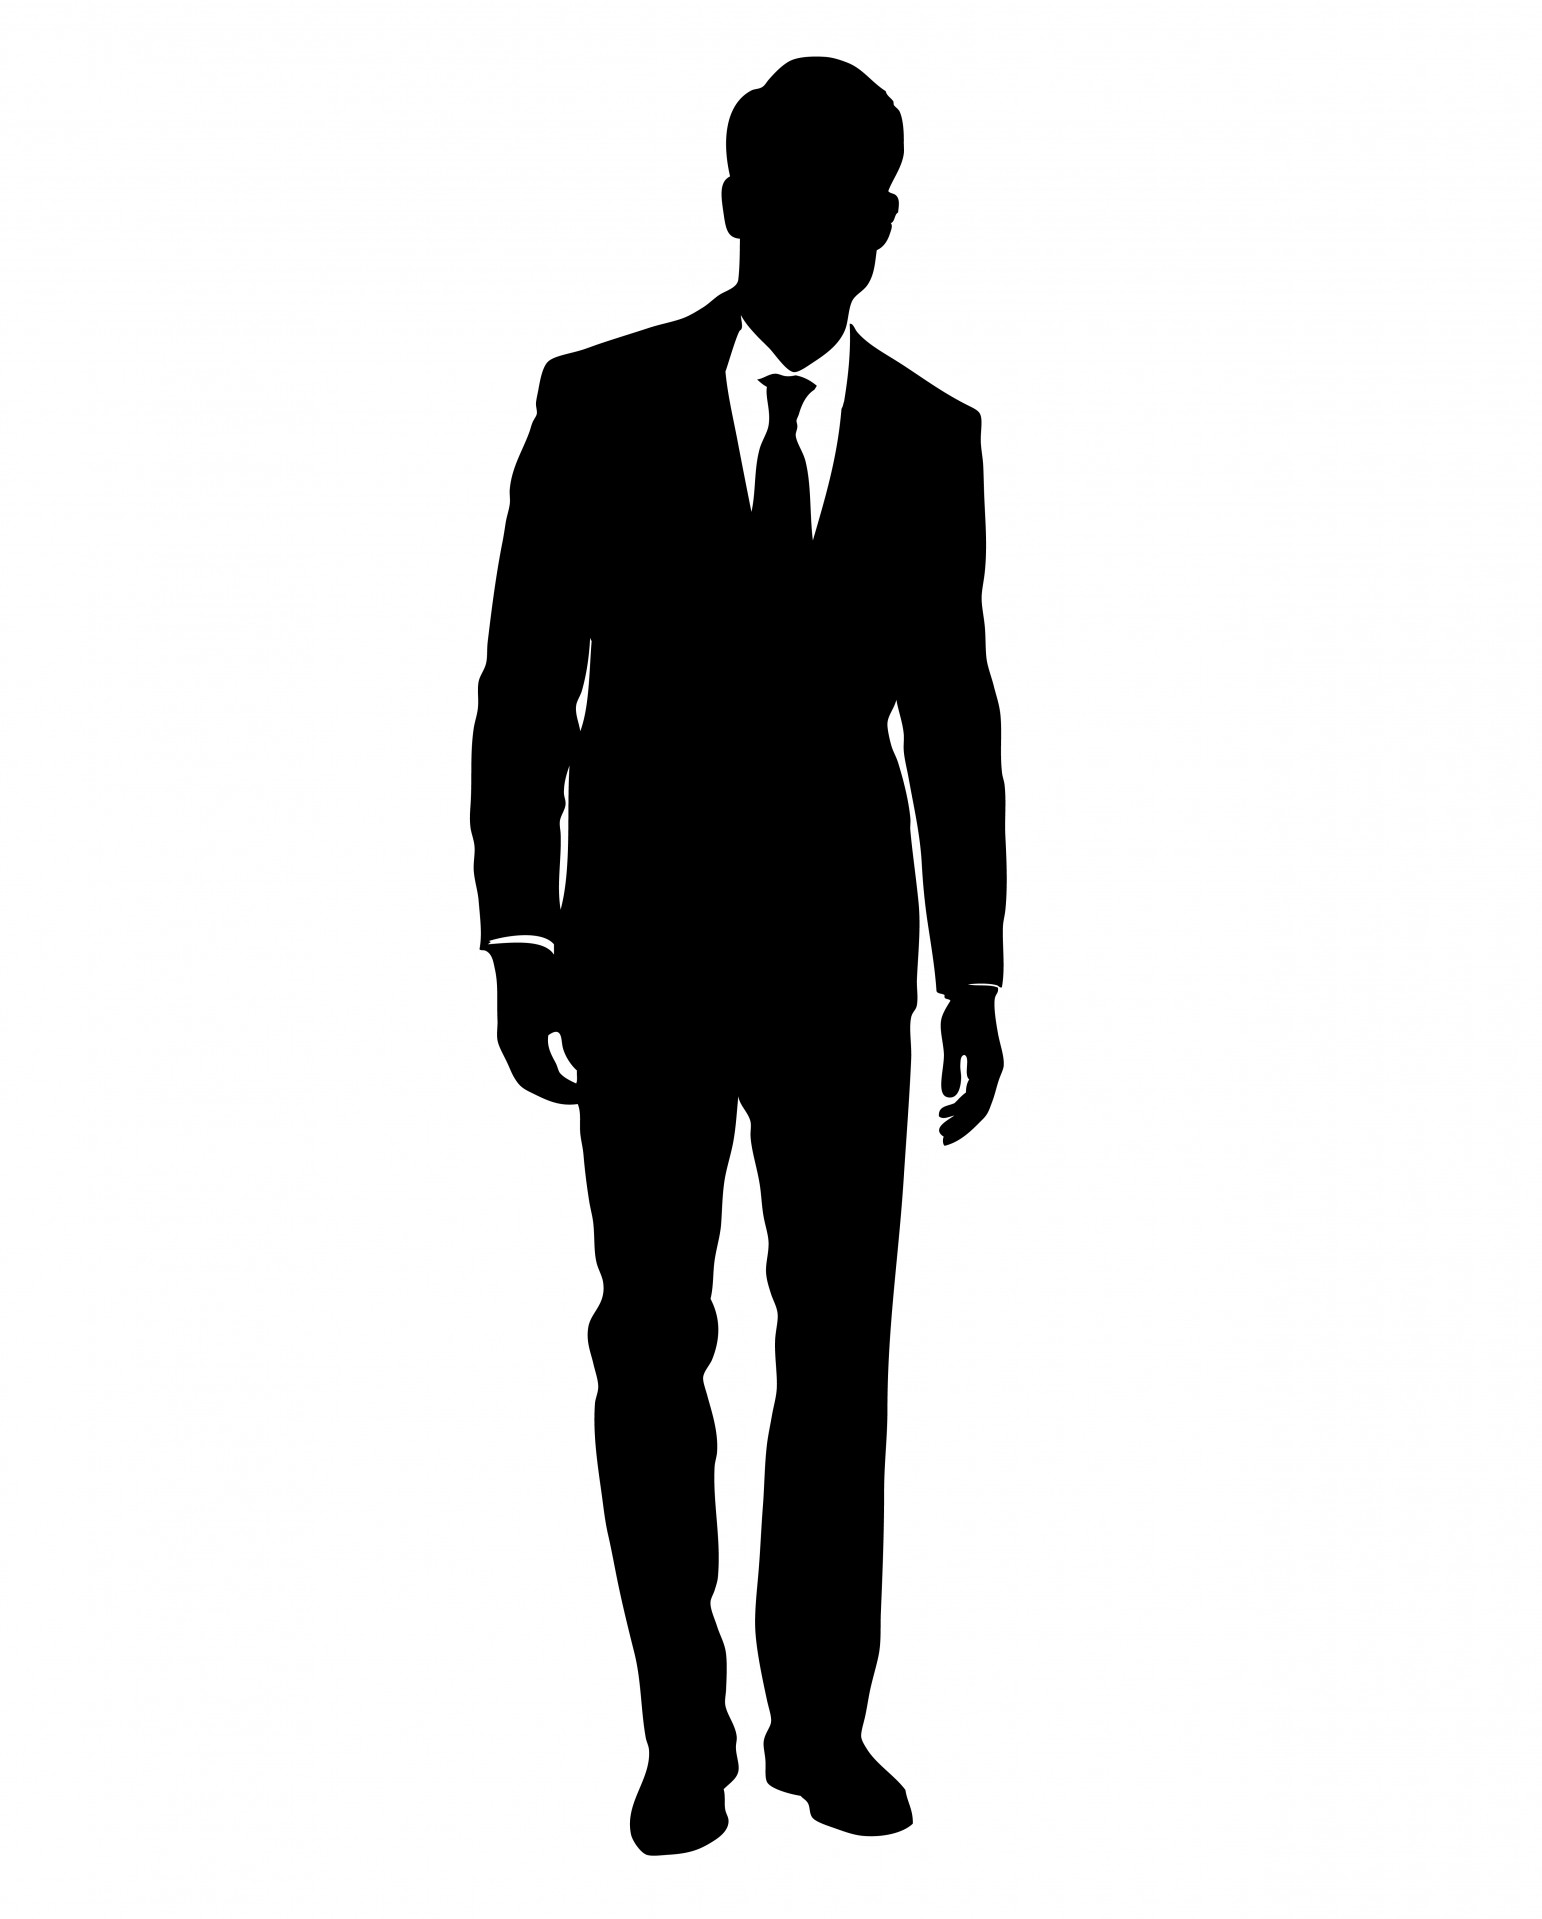 1542x1919 Man In Business Suit Free Stock Photo